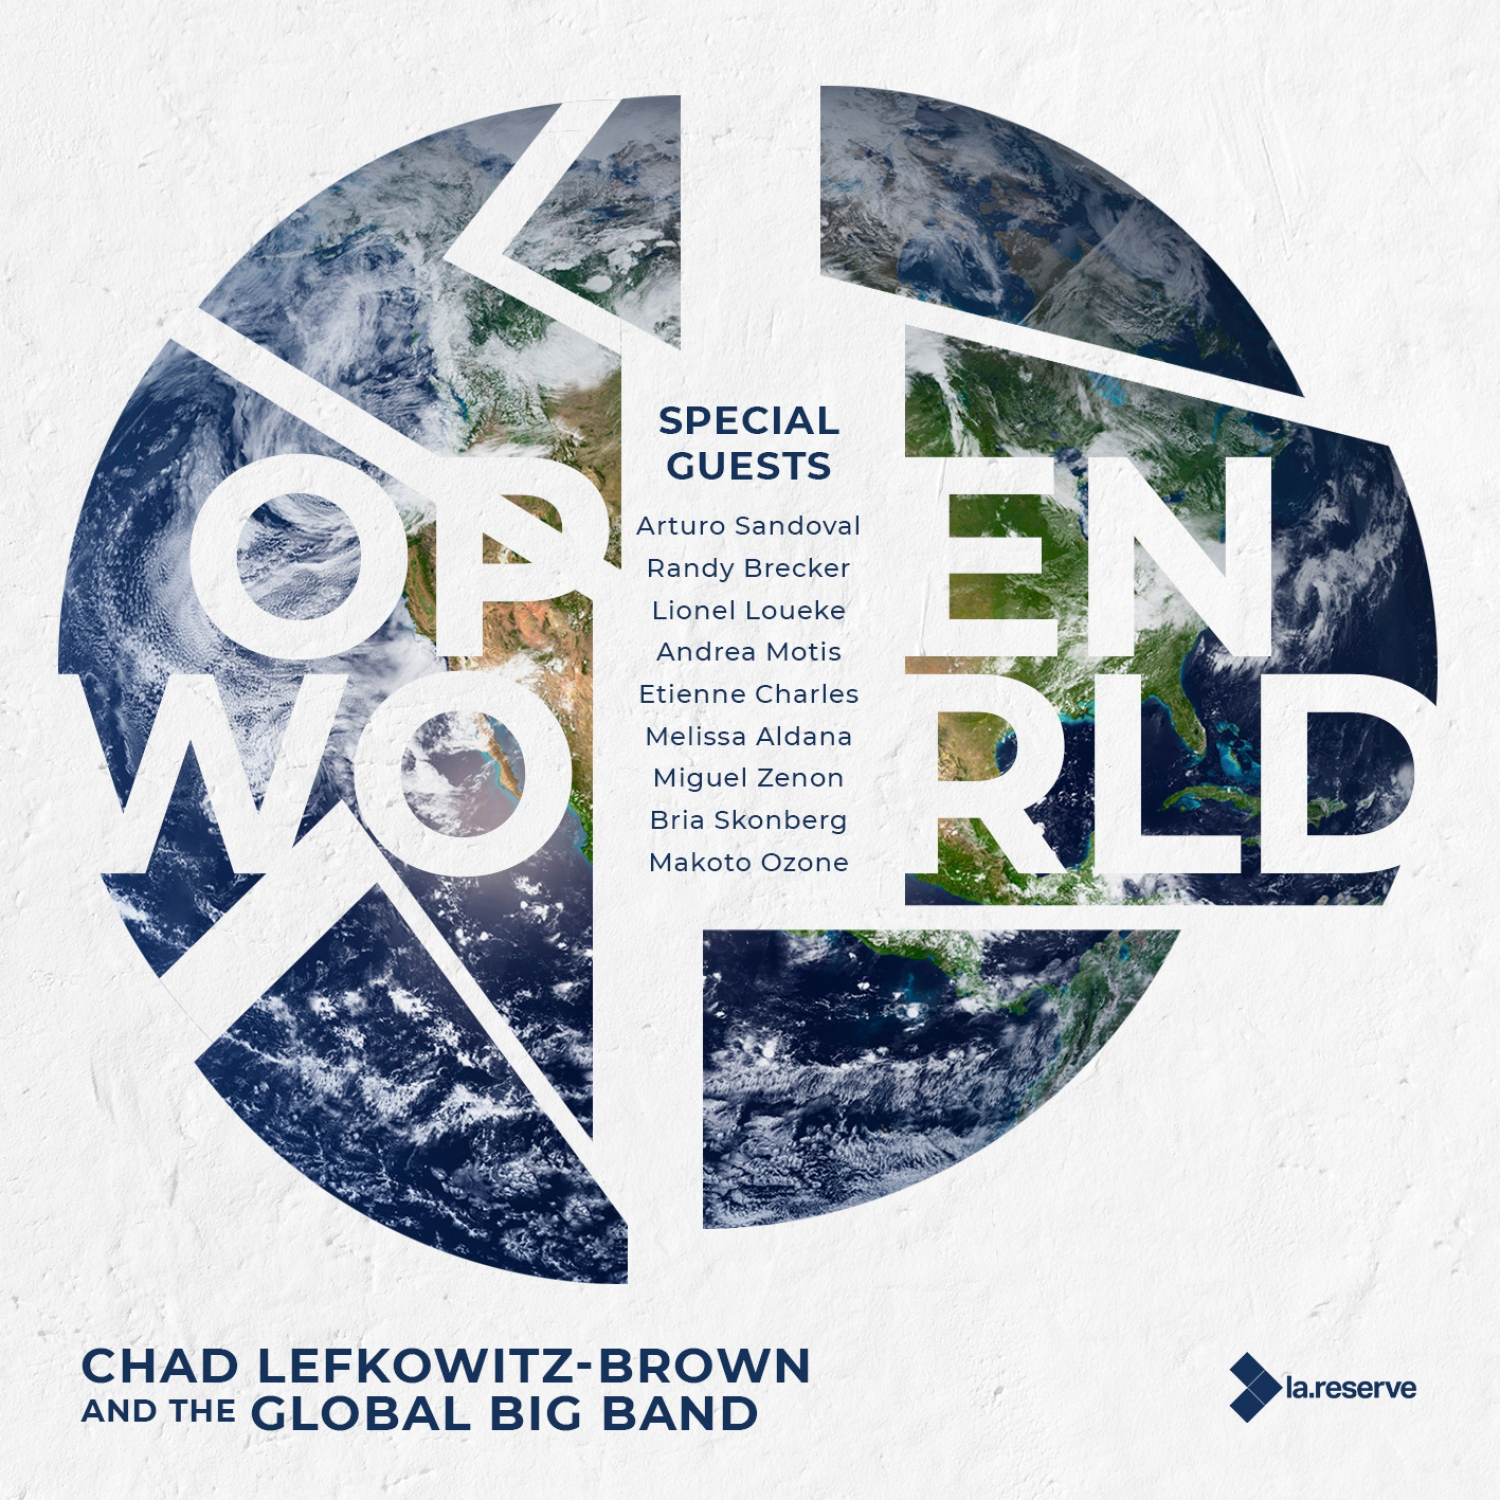 Art for United by Chad Lefkowitz-Brown and the Global Big Band